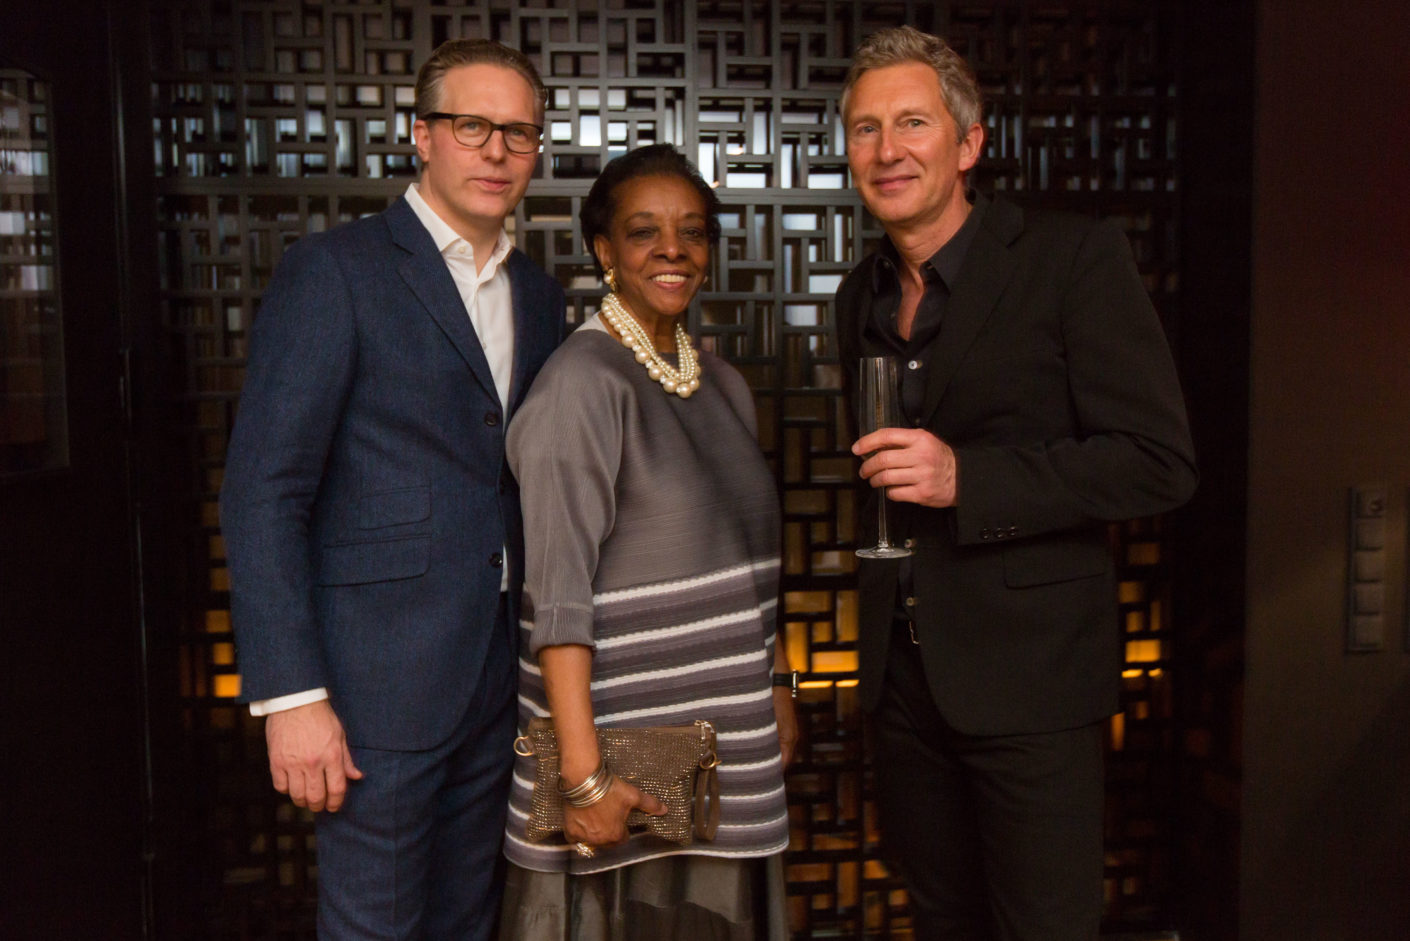 Robert Volhard, Marva Griffin, Marc Meiré